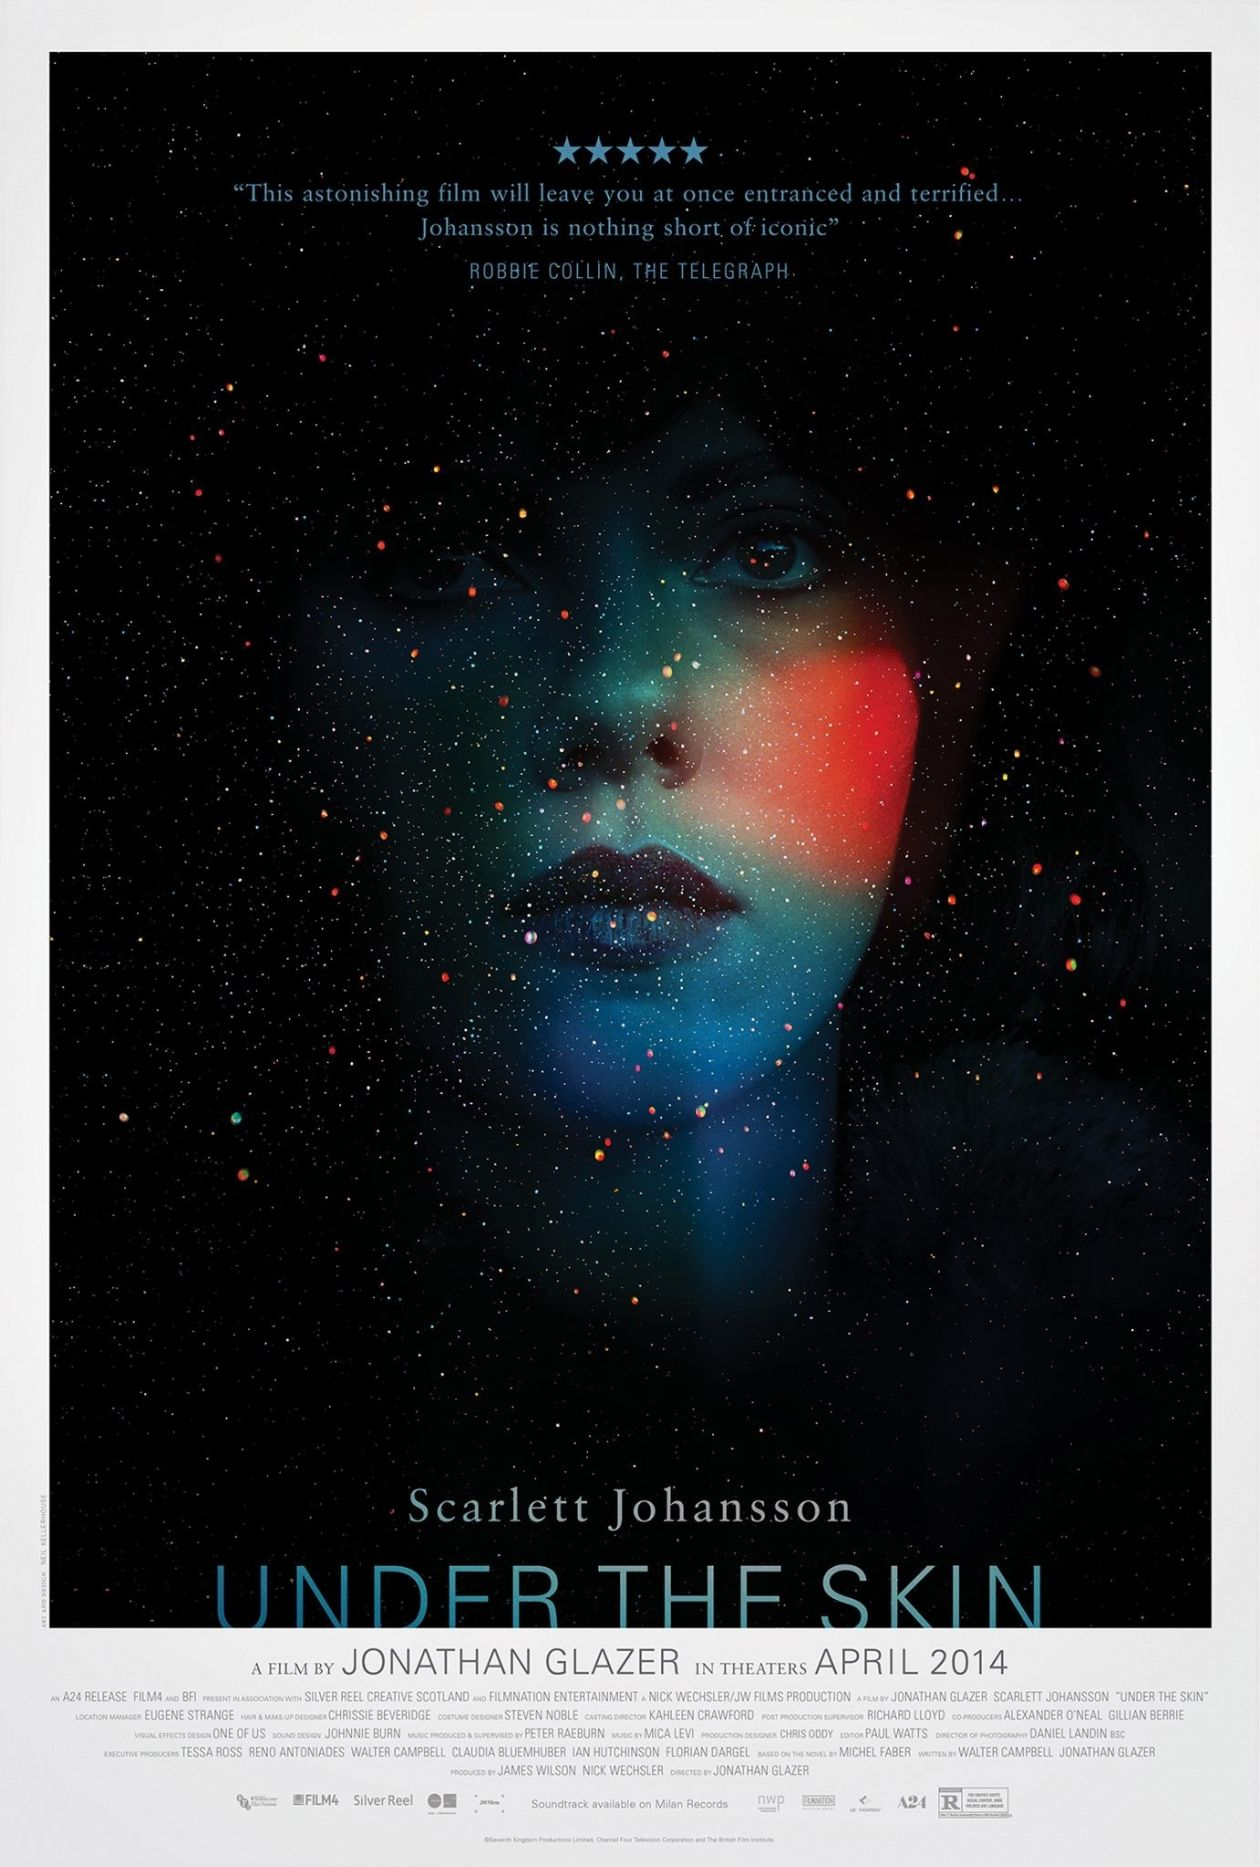 Scarlett Johansson | Under the skin | Jonathan Glazer 2013 / MOVIE POSTER / AFFICHE DU FILM